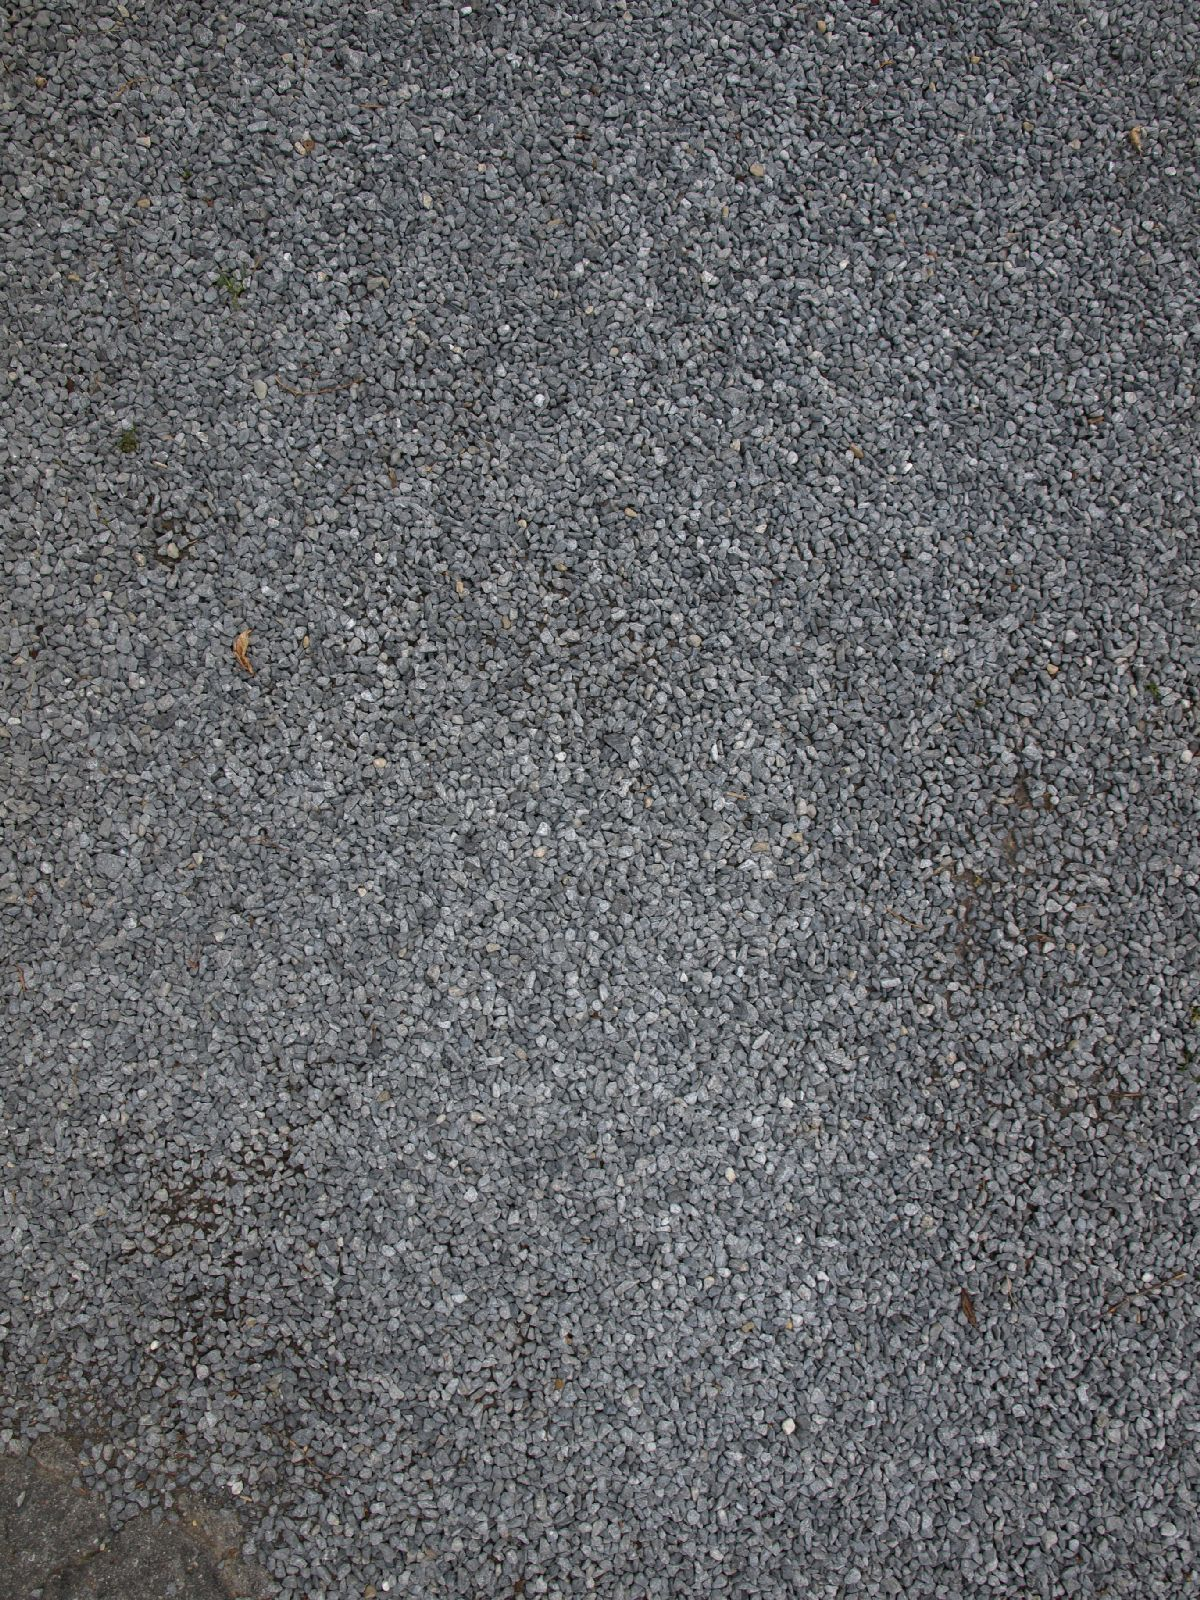 Ground-Nature_Texture_A_P4261811